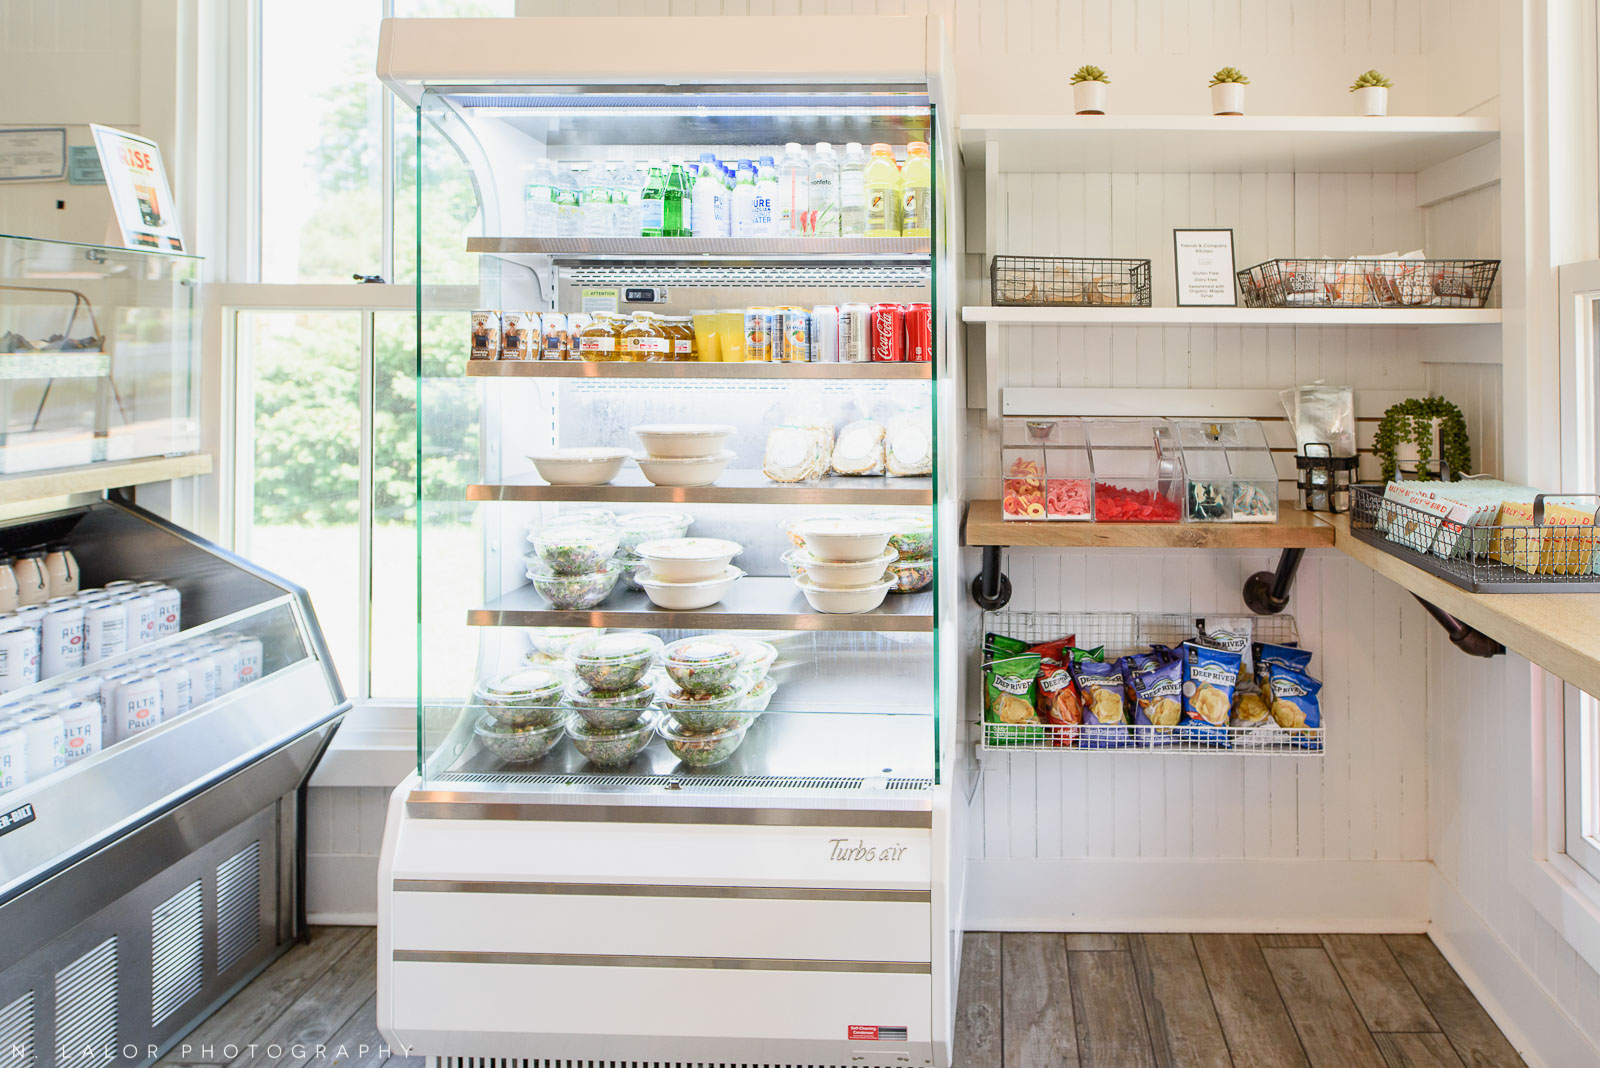 Salads, drinks, and breakfast items. Ada's Kitchen + Coffee in Riverside, Connecticut. Image by N. Lalor Photography.